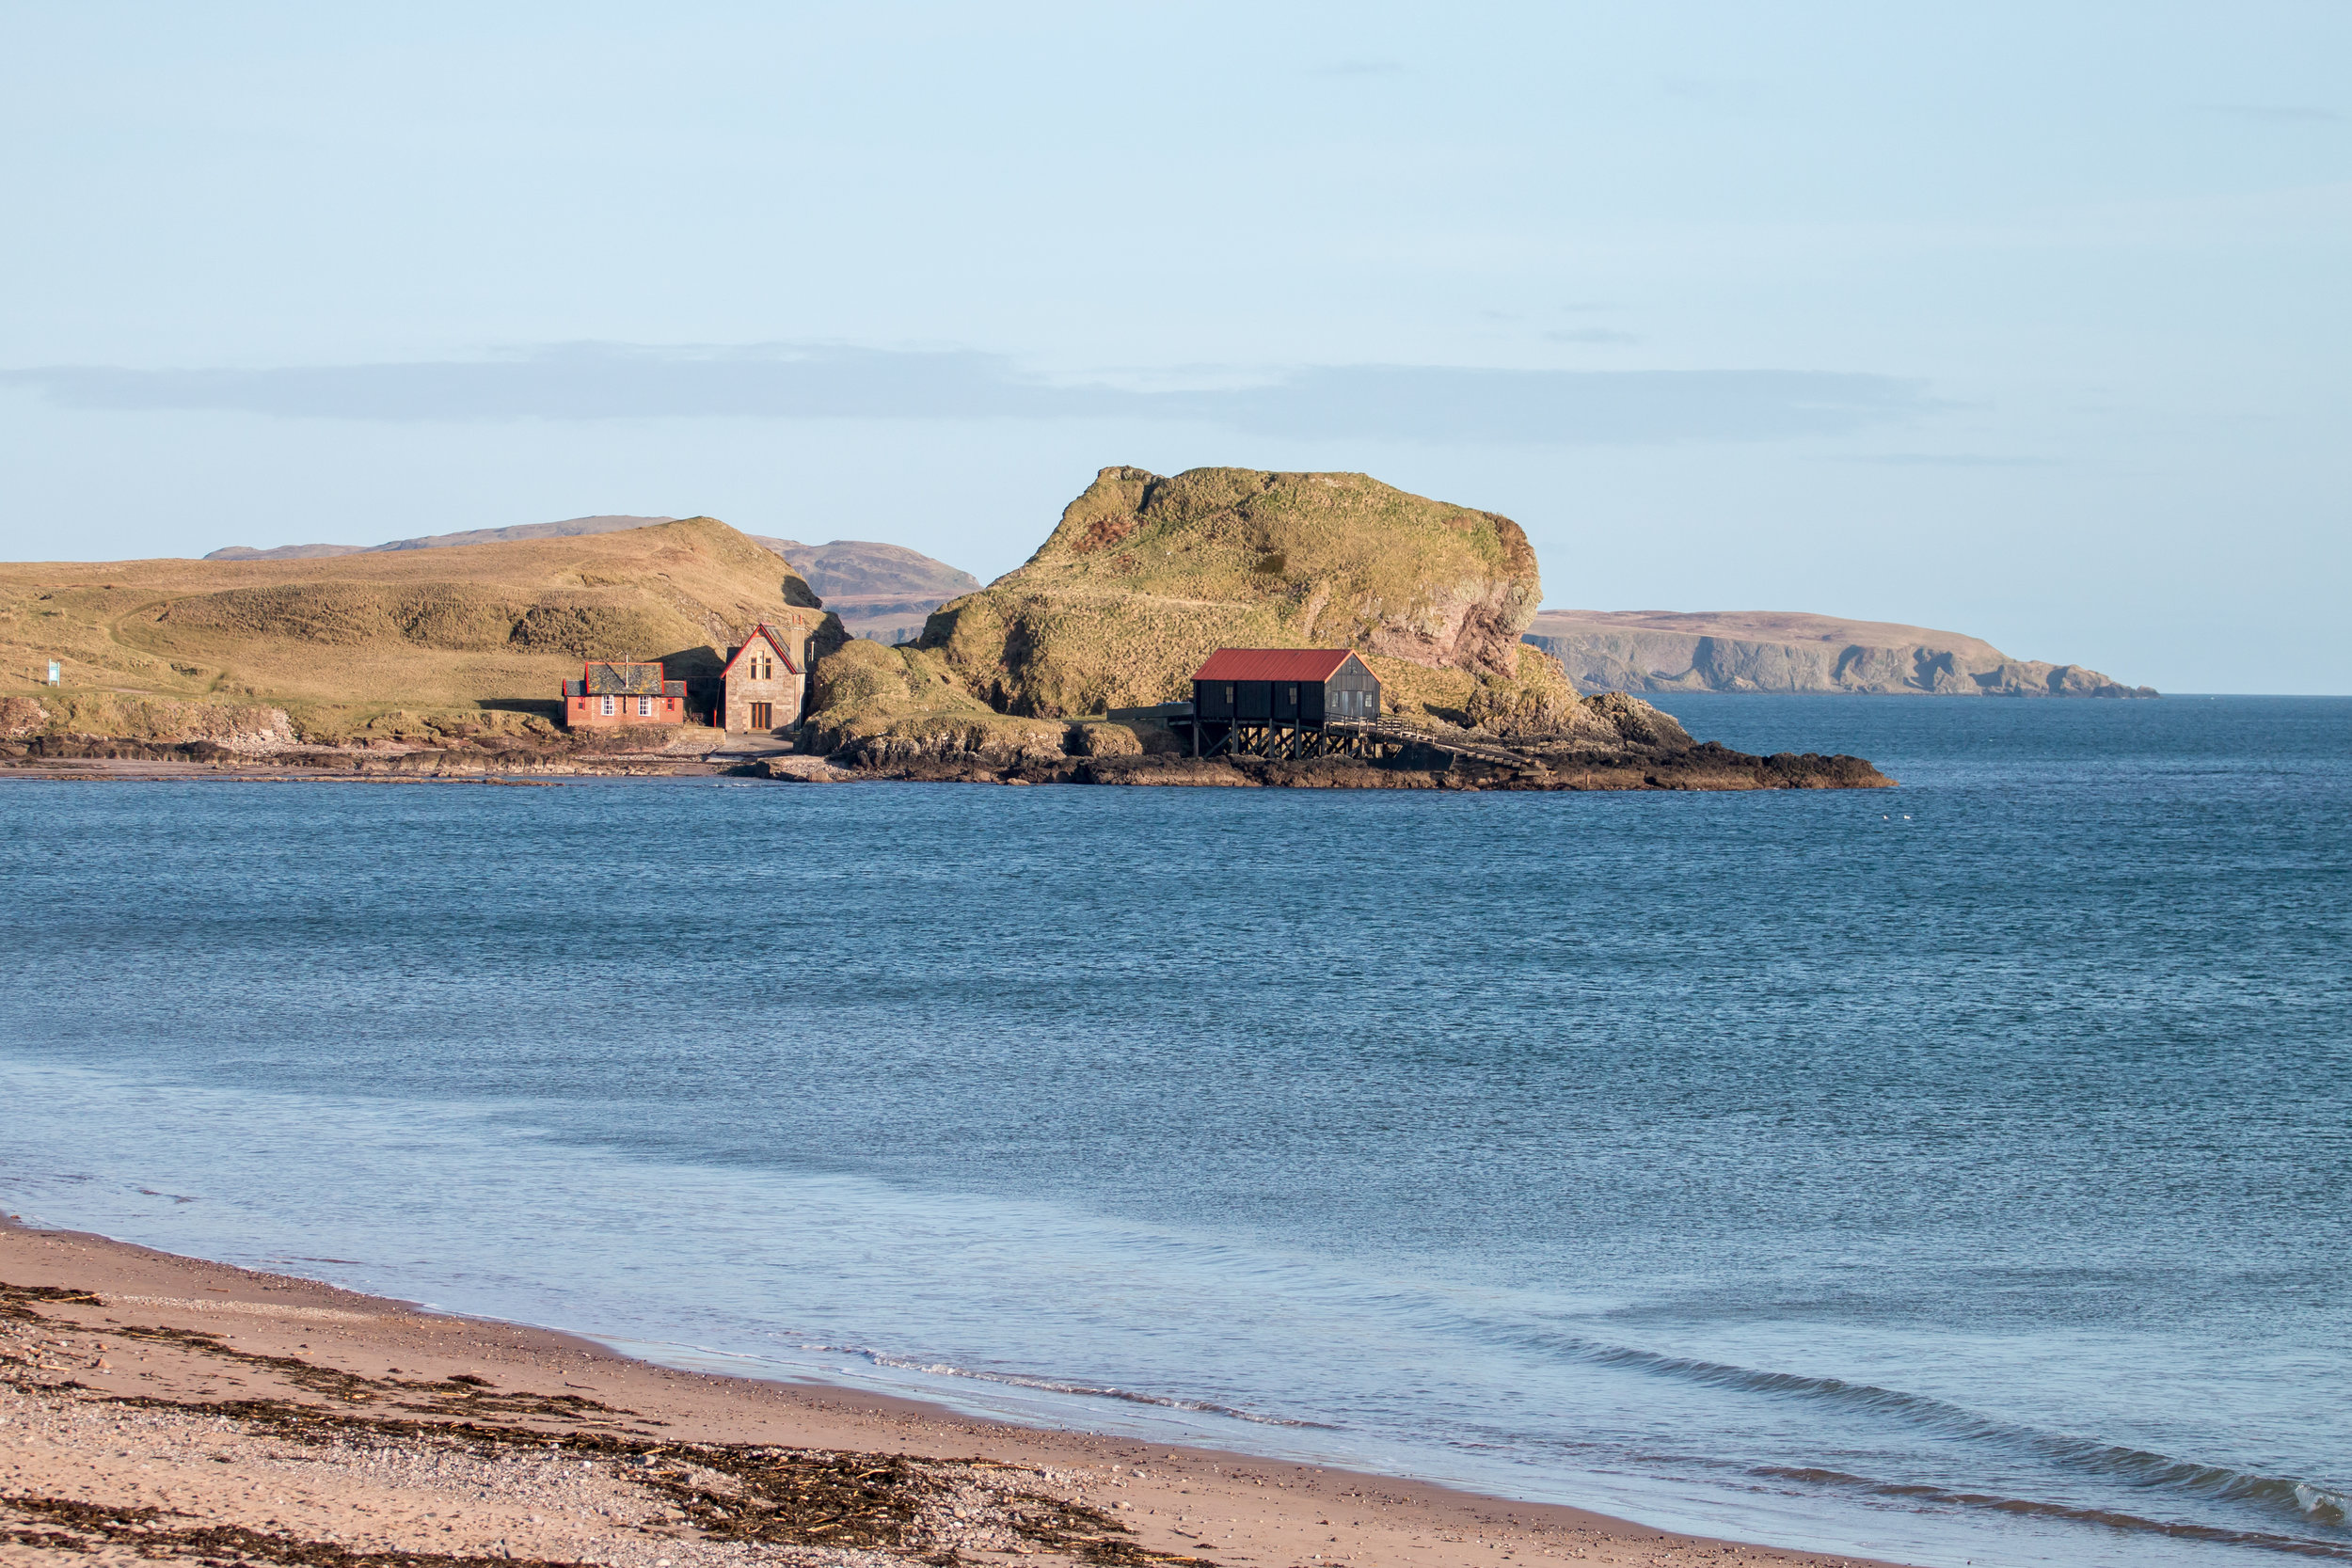 Dunaverty rock and the old Lifeboat station.